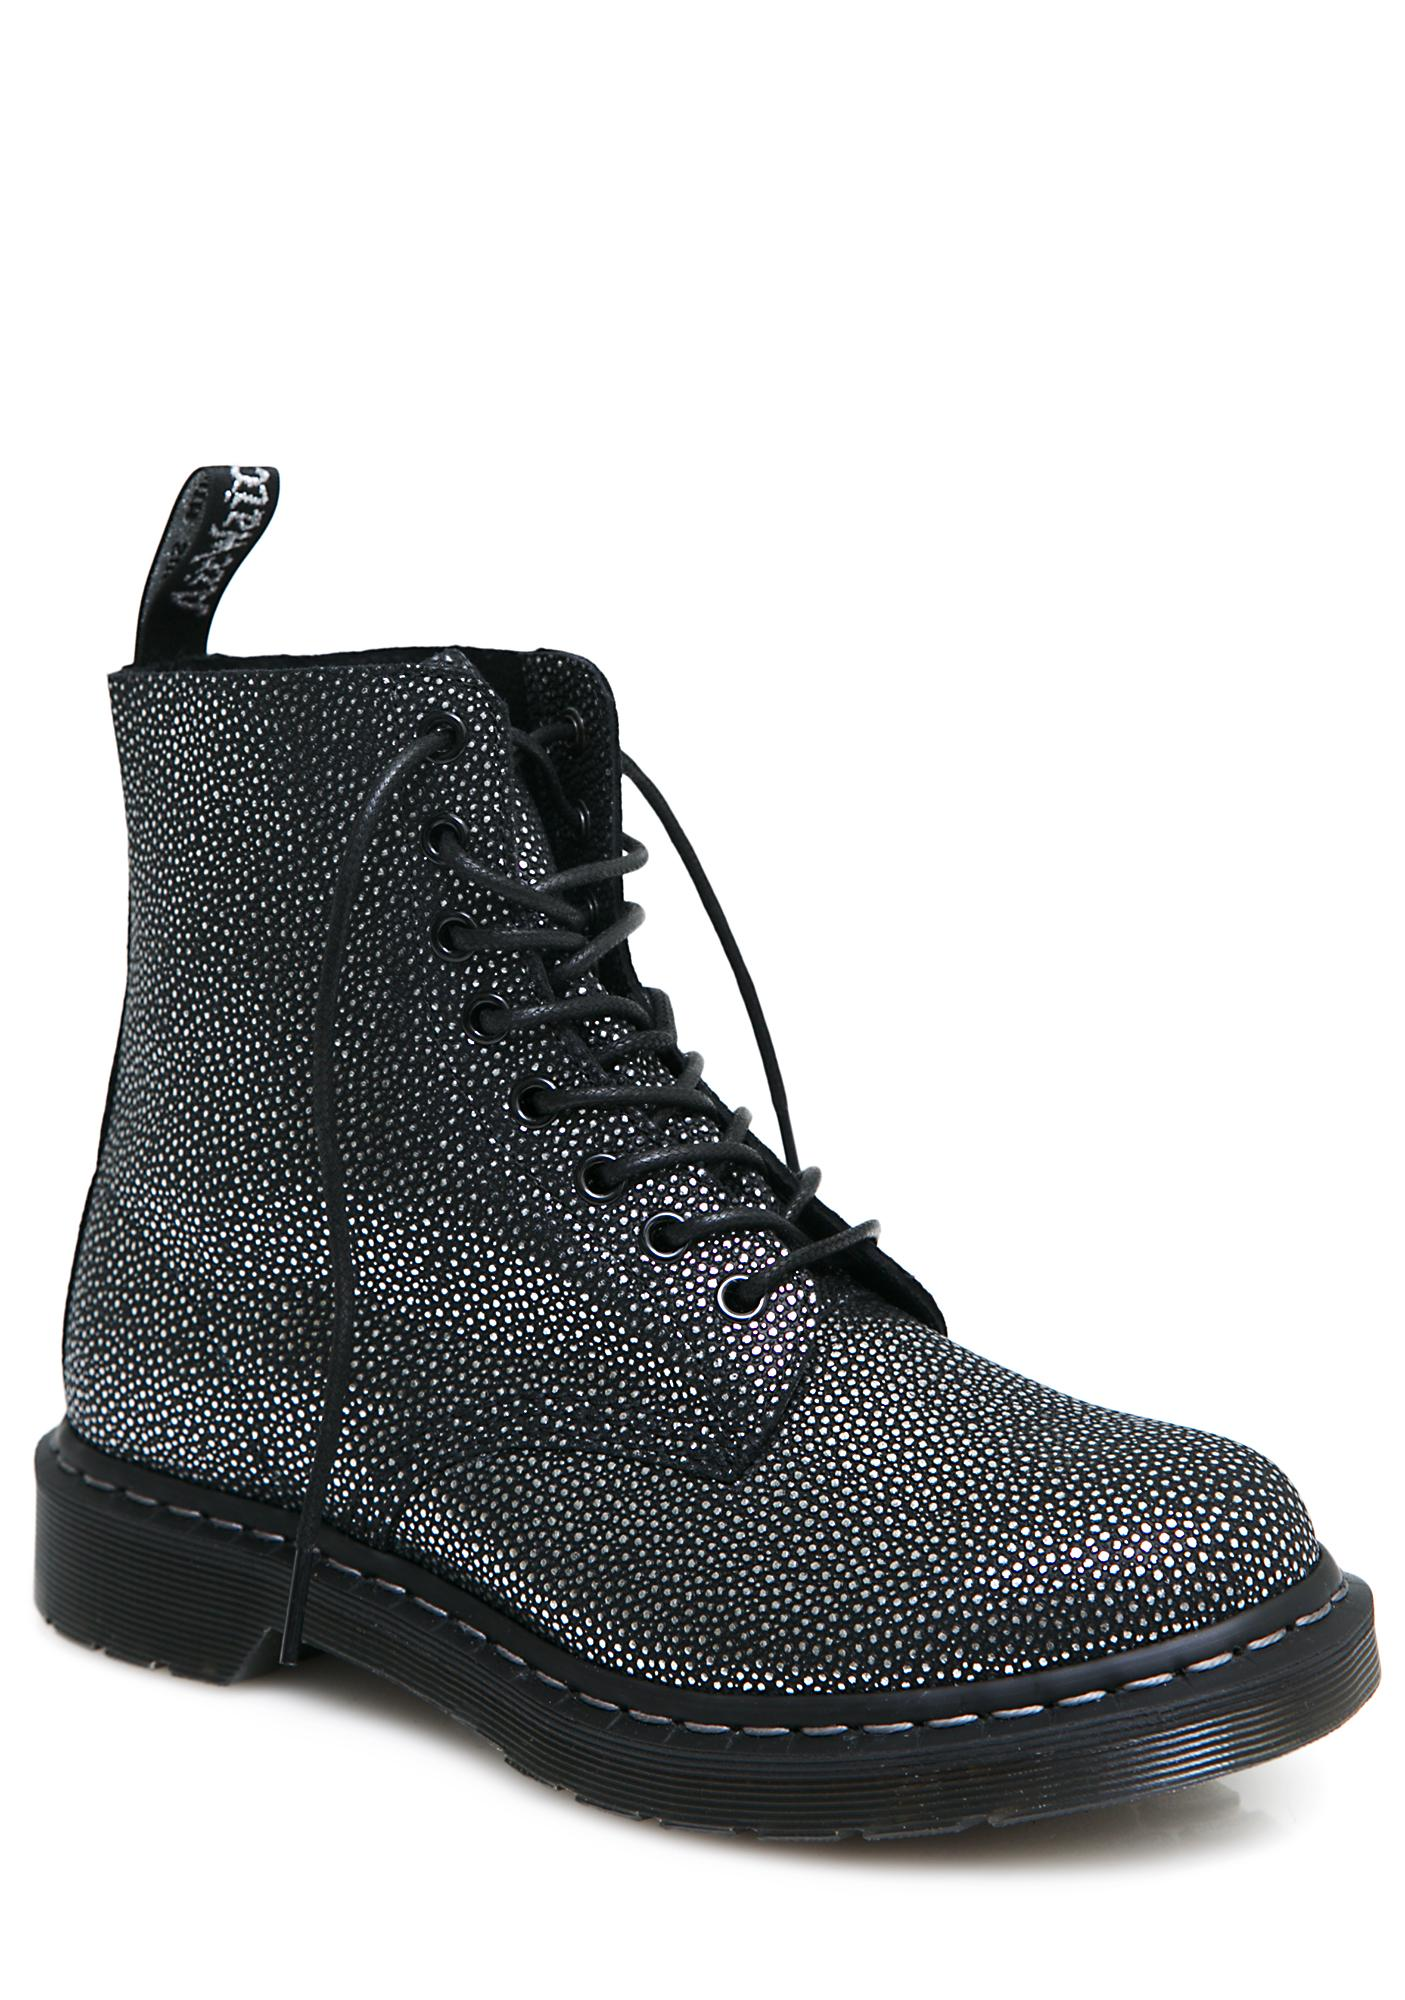 Dr. Martens Metallic Pebble 1460 8 Eye Boots